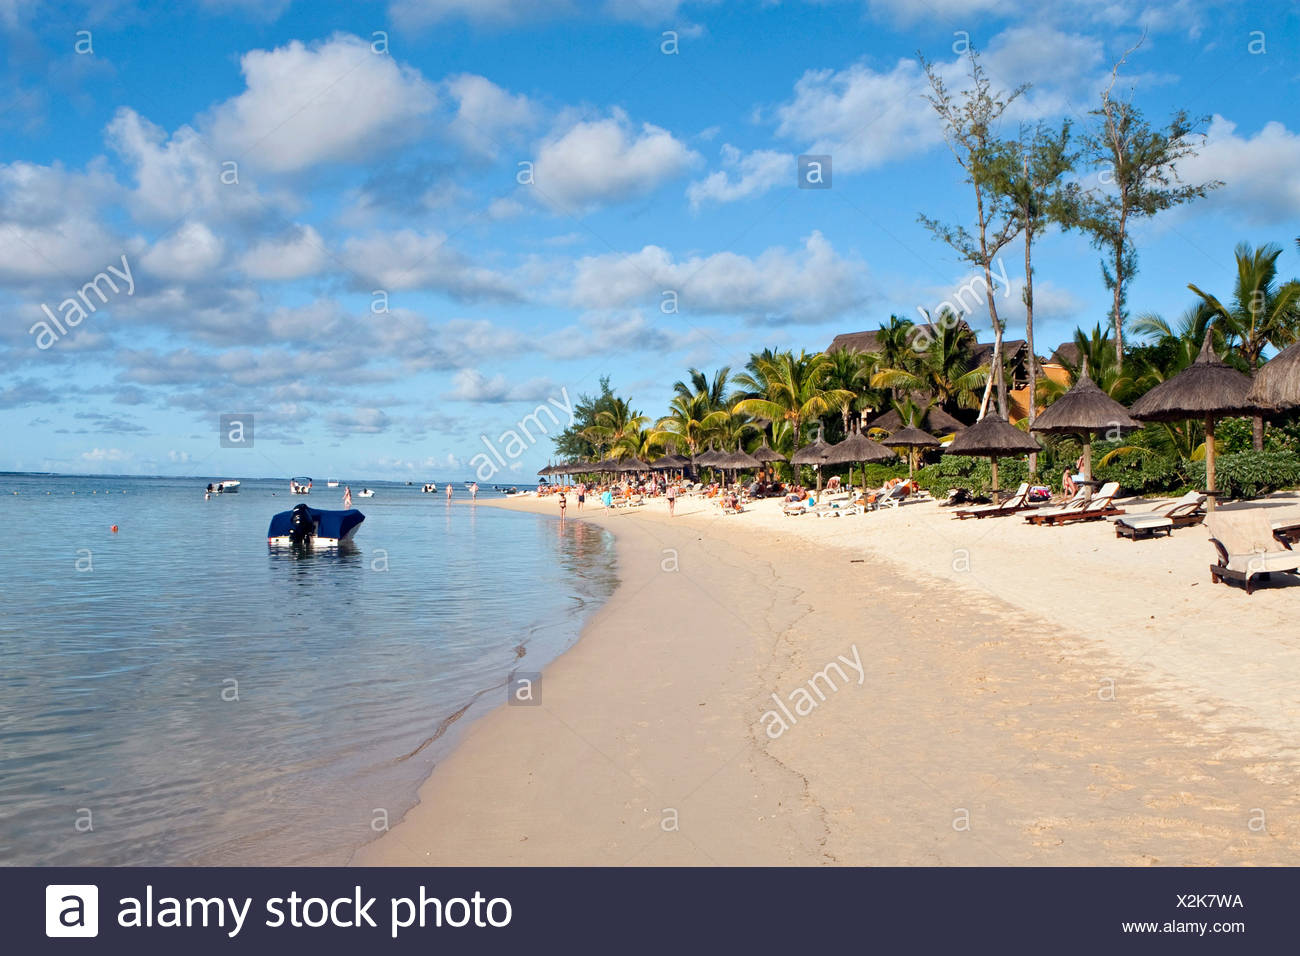 Beach near Bel Ombre, Mauritius - Stock Image